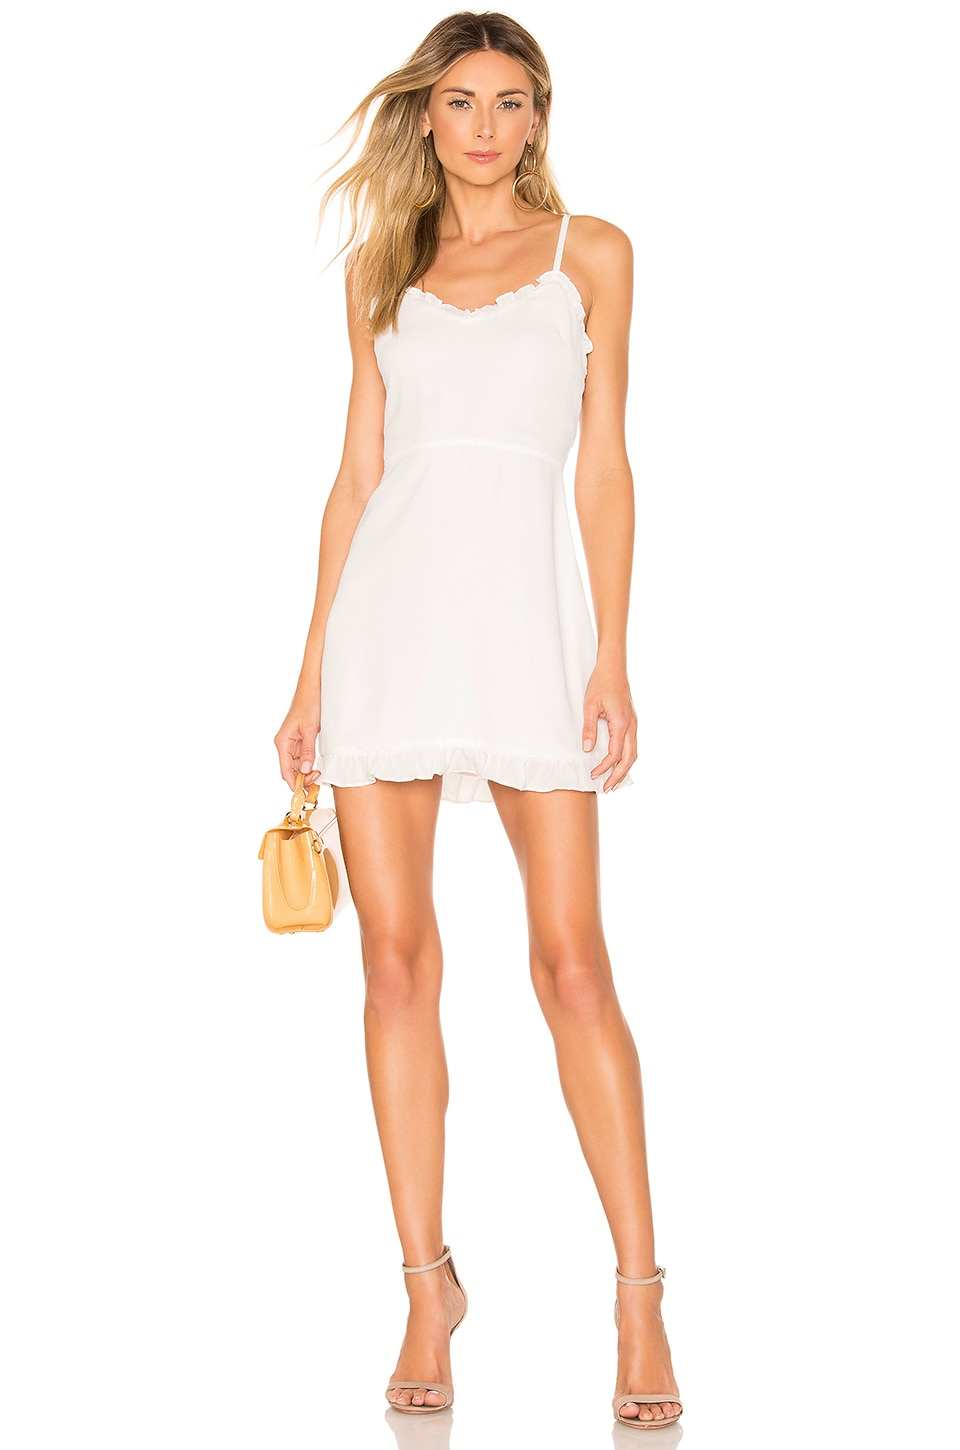 superdown Charlee Frill Cami Dress in White